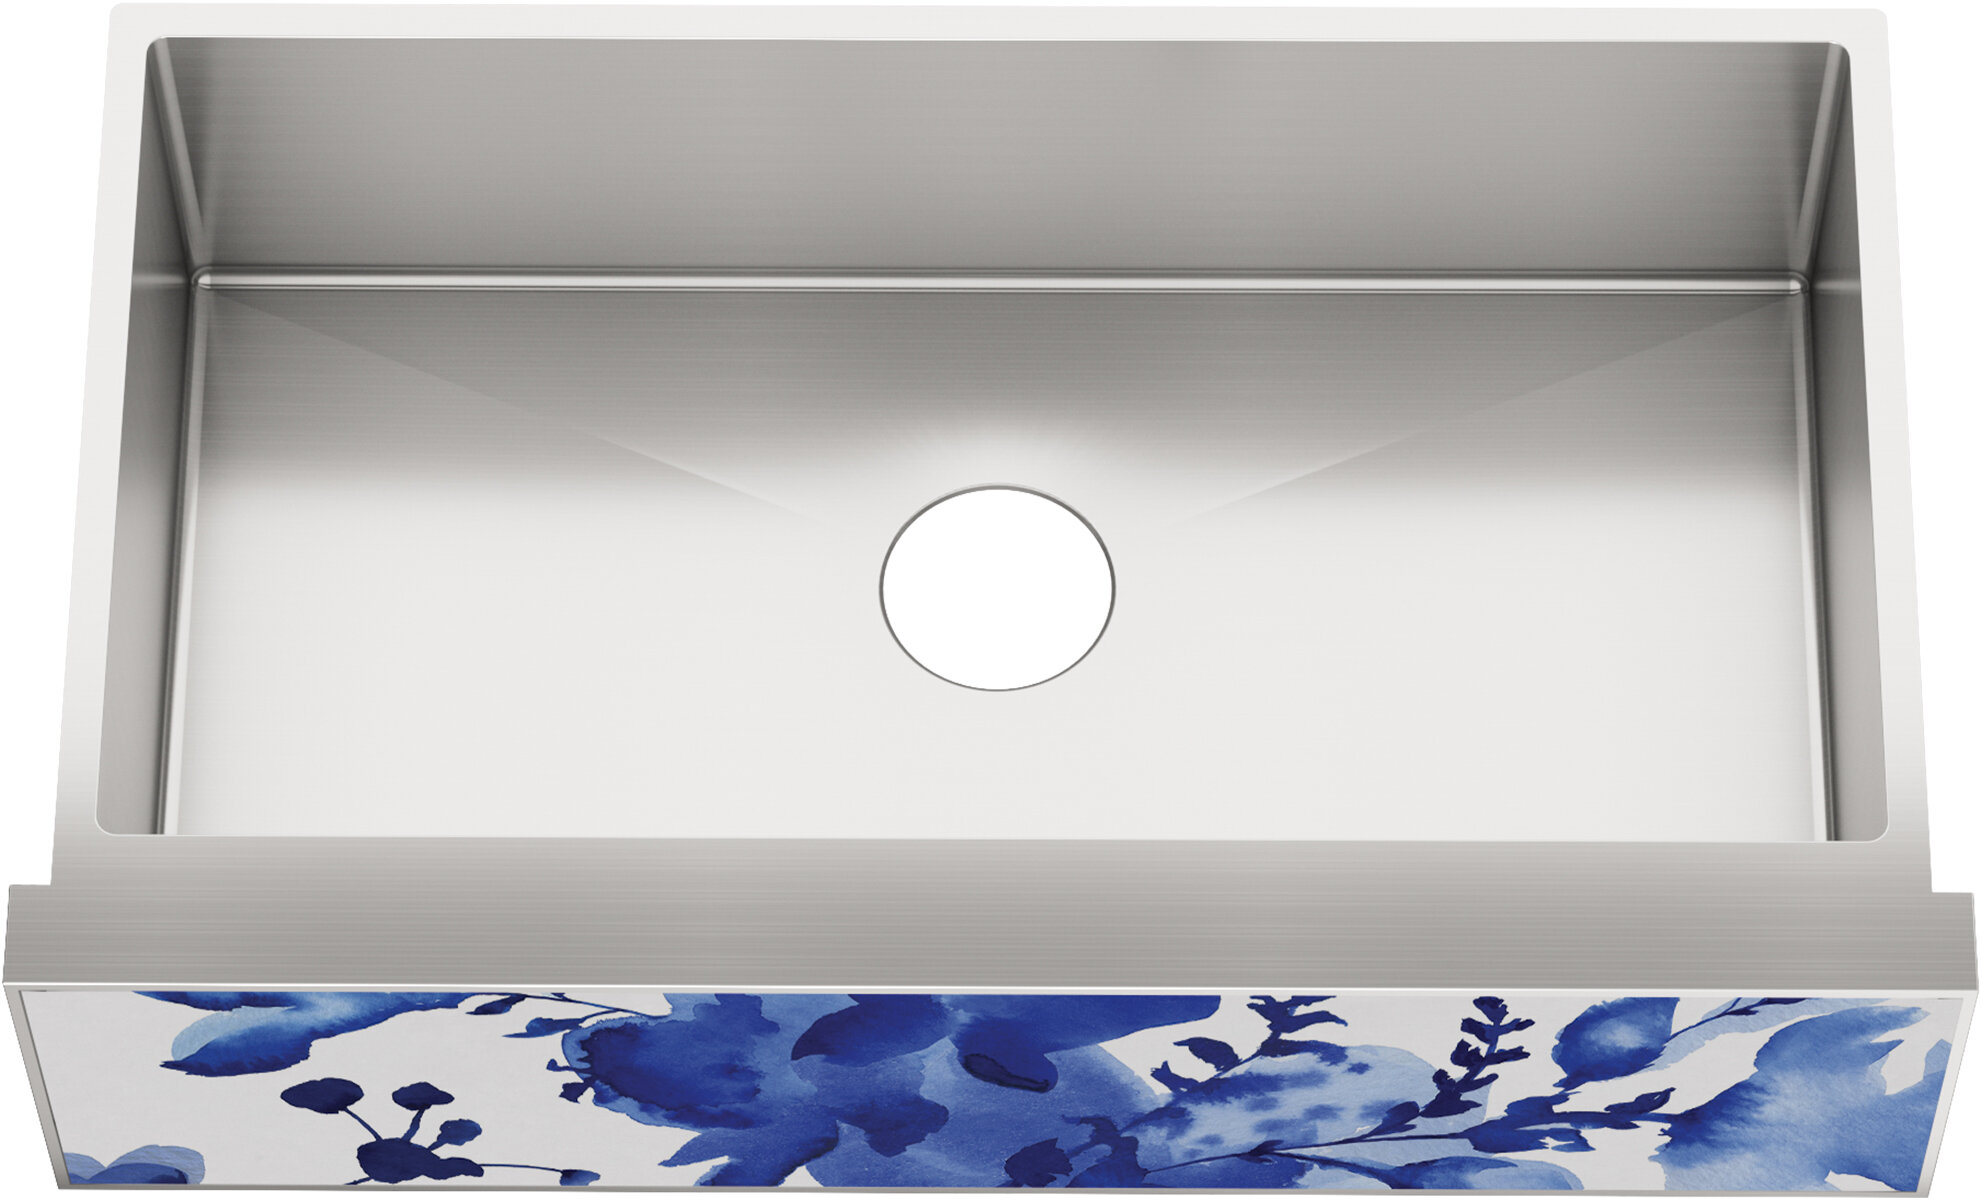 Kohler Tailor Large Single Basin Stainless Steel Sink With Large Flora Insert Wayfair